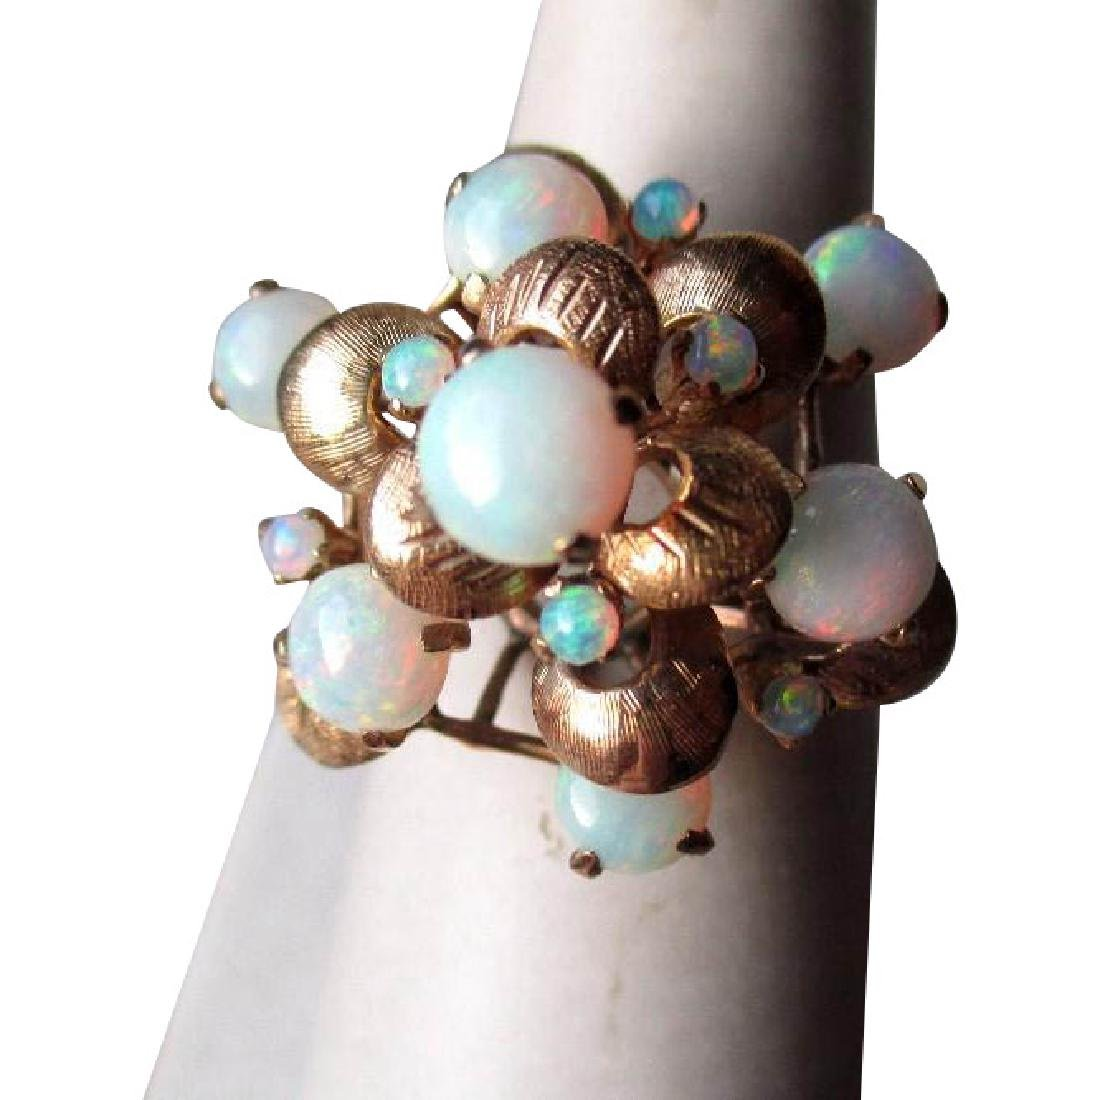 Stunning 18k Gold and Opal Princess Ring